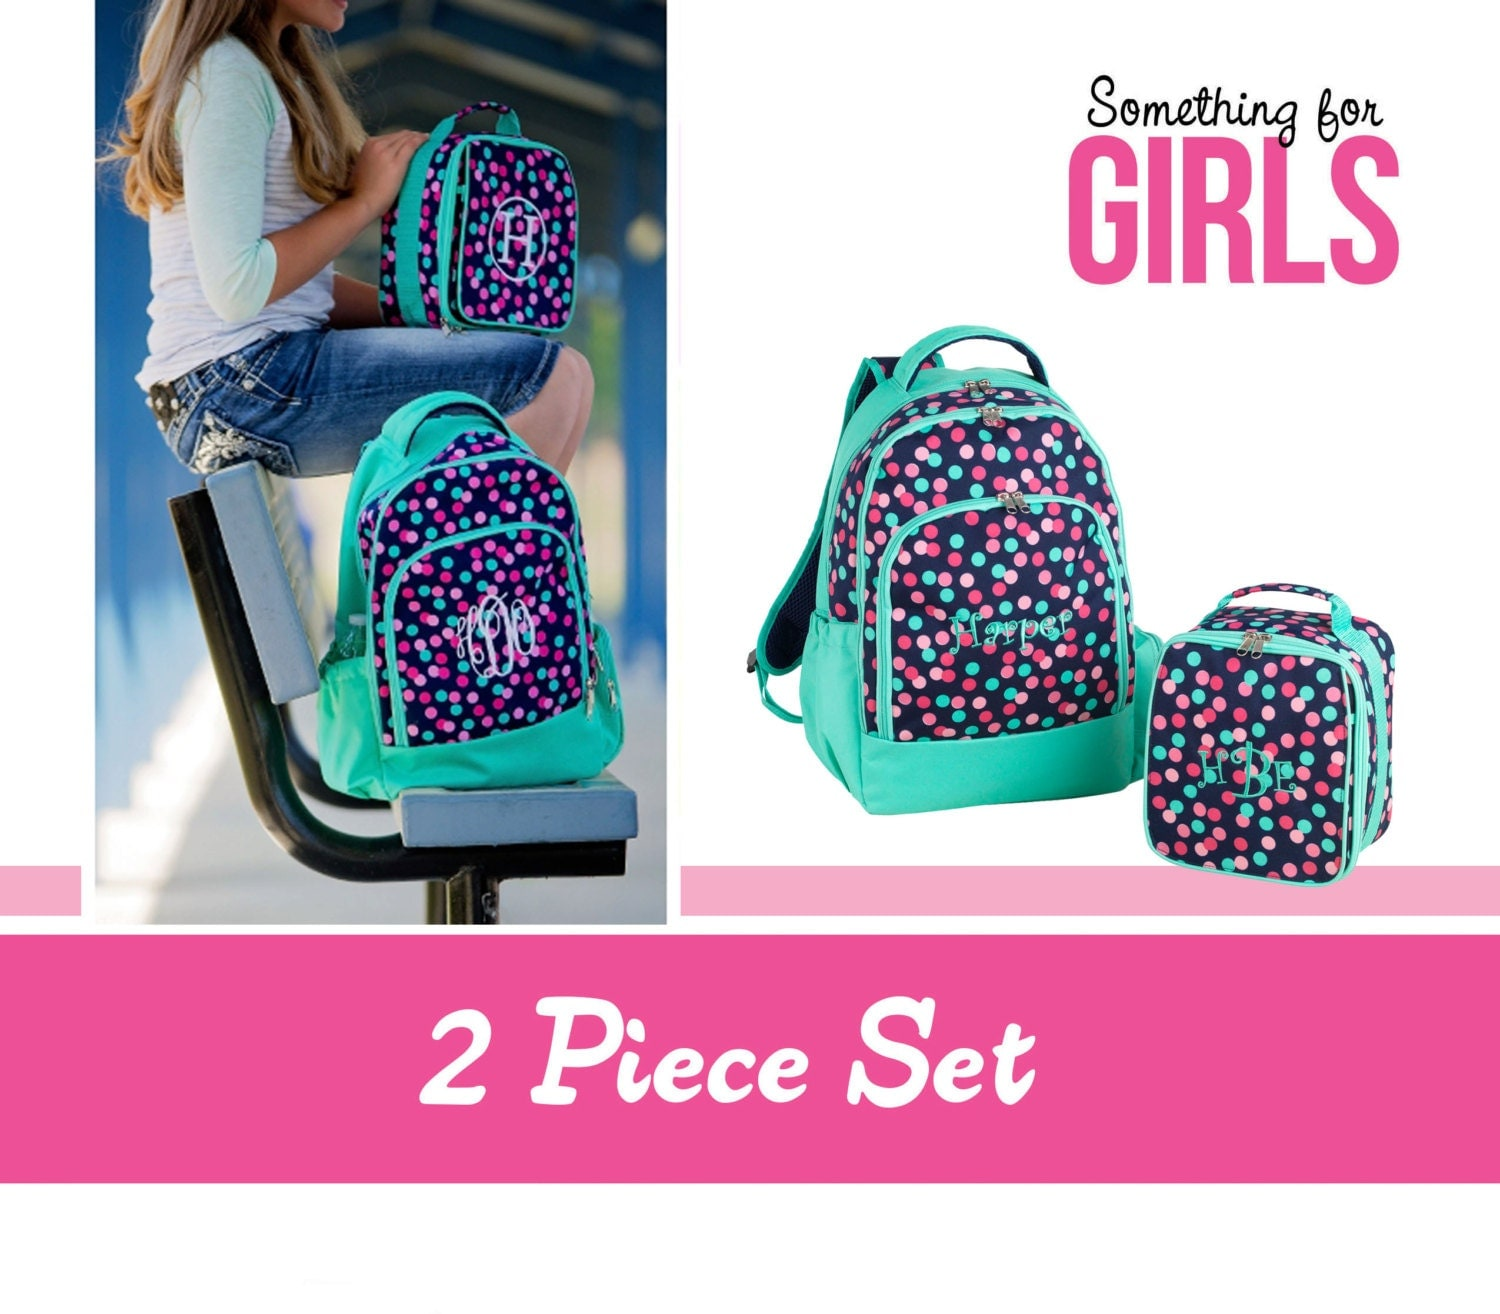 monogrammed school backpack and lunch box set for girls